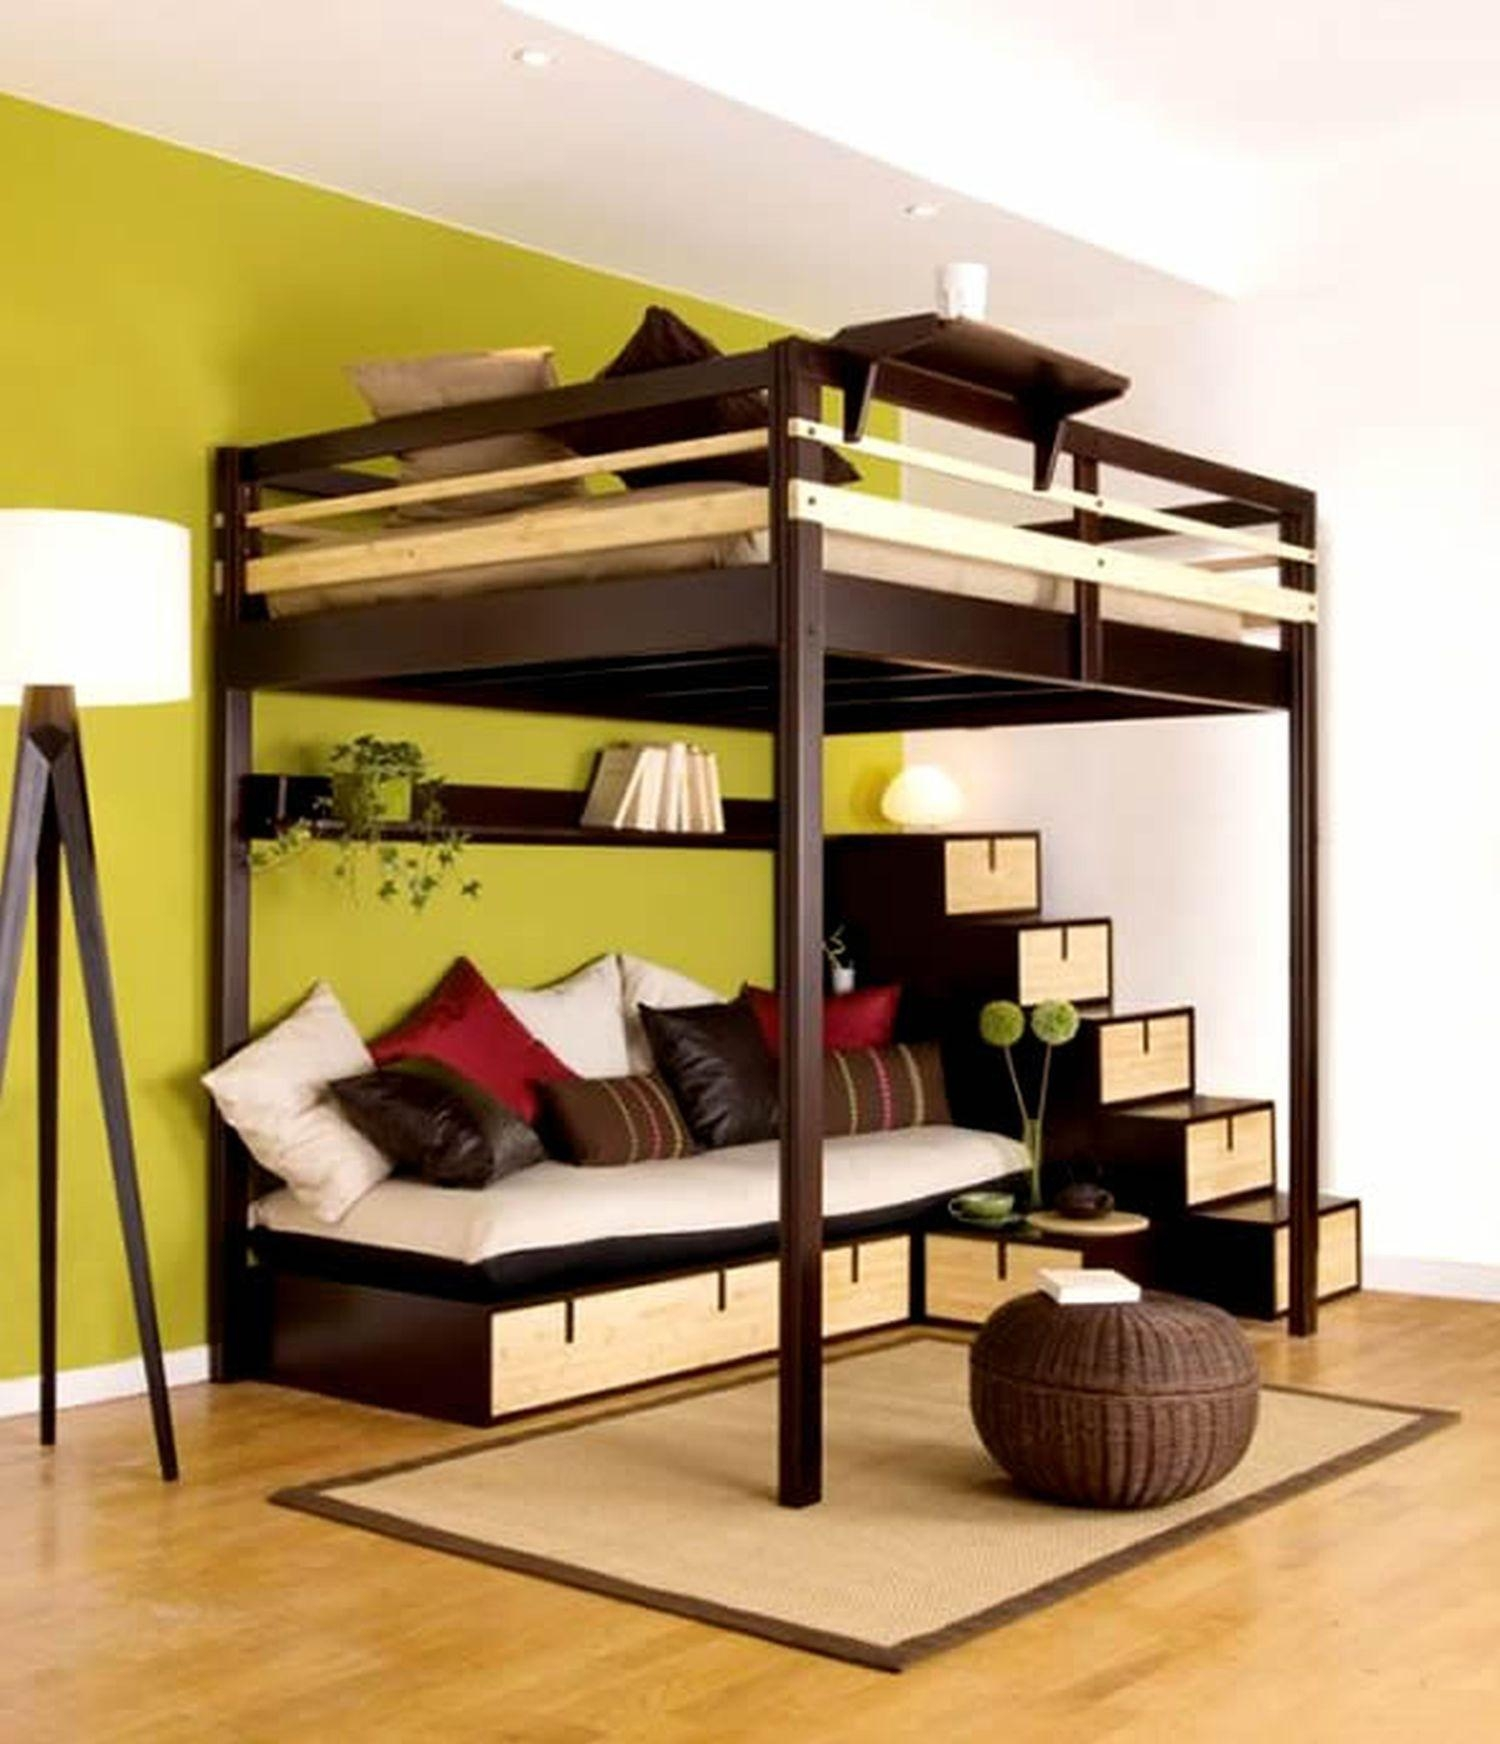 20 Photos Bunk Bed With Sofas Underneath Sofa Ideas